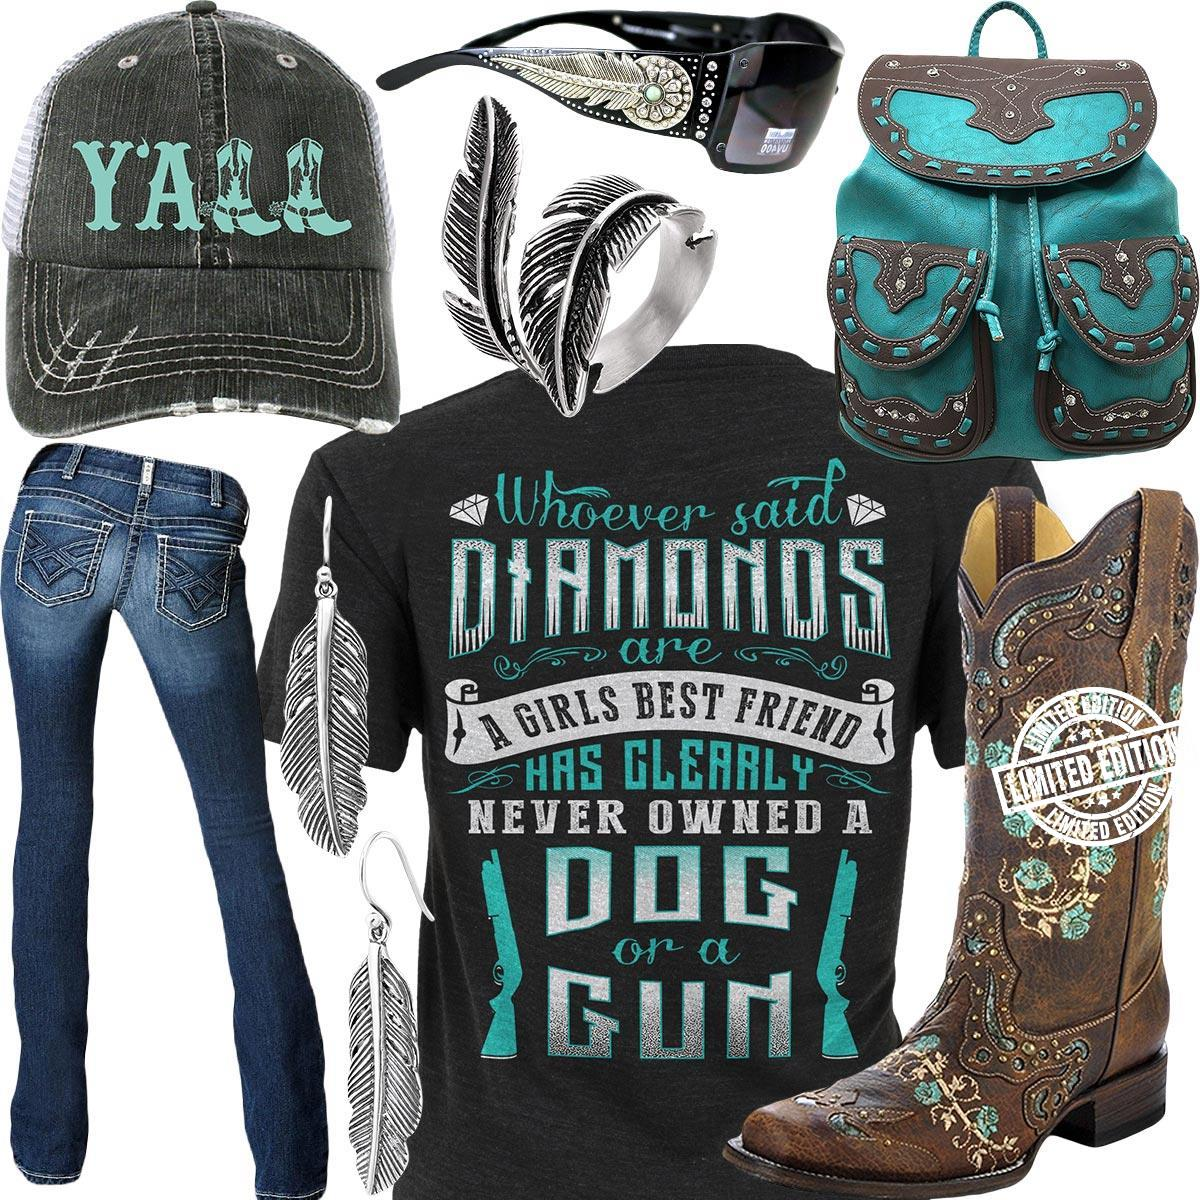 Whoever said diamonds are a girls best friend has shirt